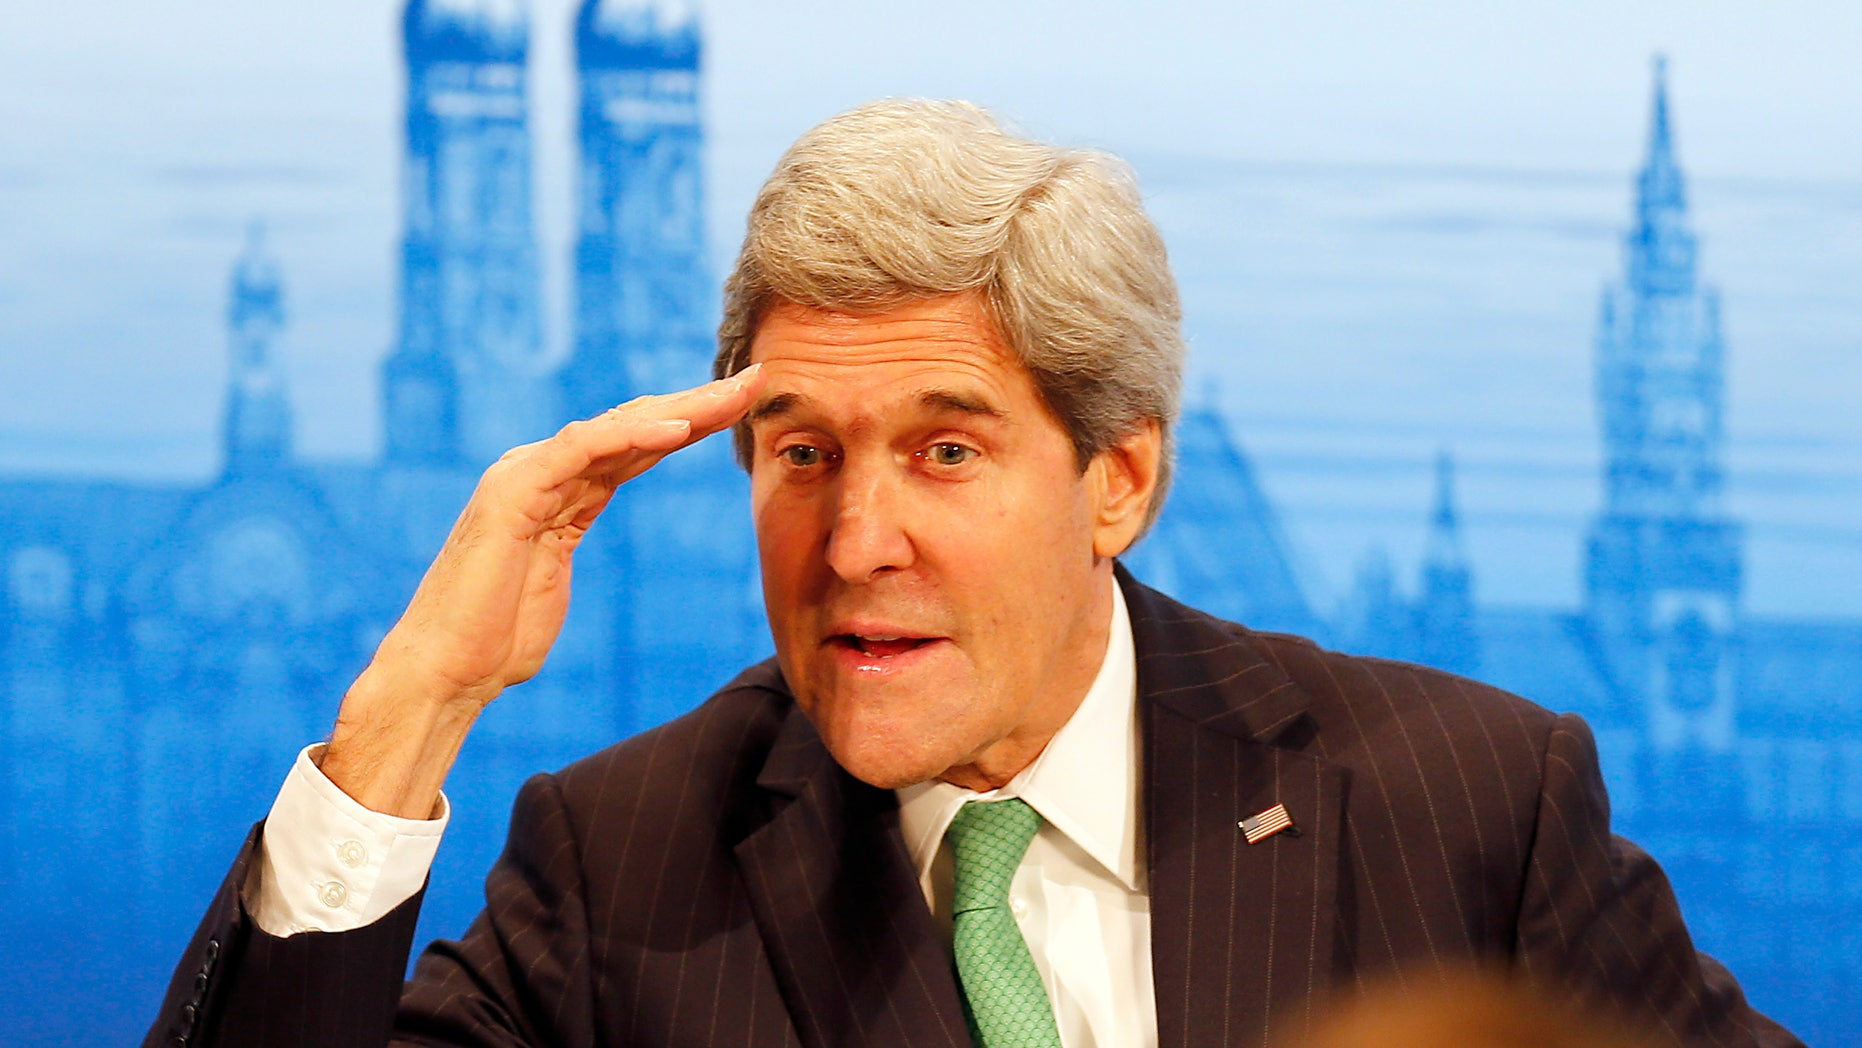 US Secretary of Foreign Affairs John Kerry salutes   as he attends  the 50th Security Conference in Munich, Germany, Saturday, Feb. 1, 2014. The conference on security policy takes place from Jan. 31, 2014 until Feb. 2, 2014. (AP Photo/Frank Augstein)